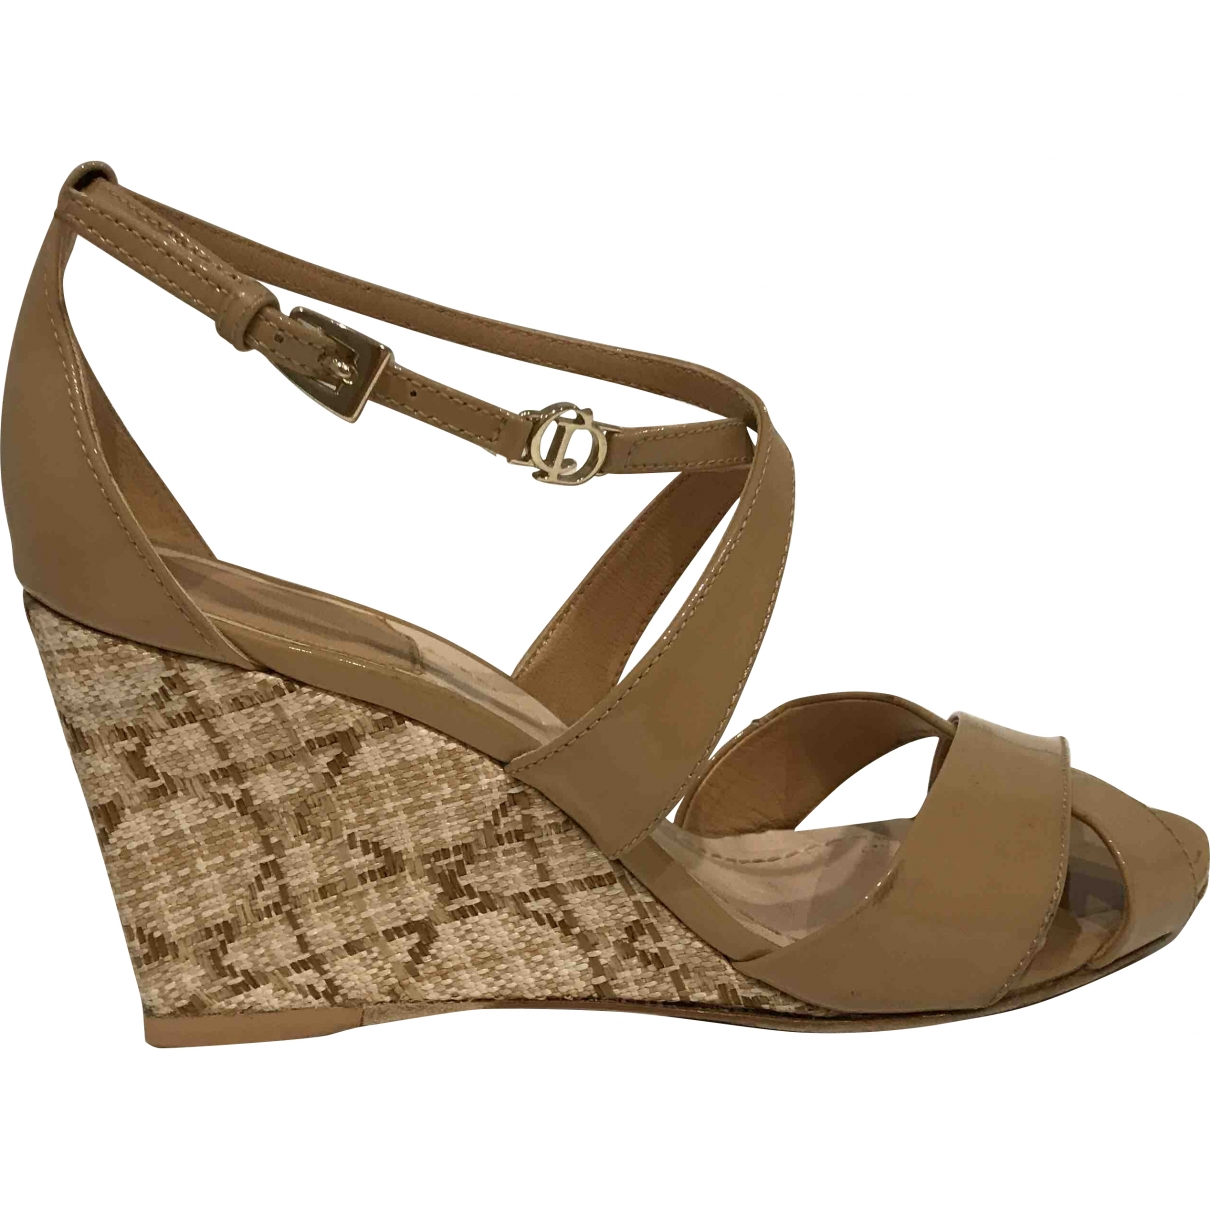 Dior \N Beige Patent leather Sandals for Women 36 EU